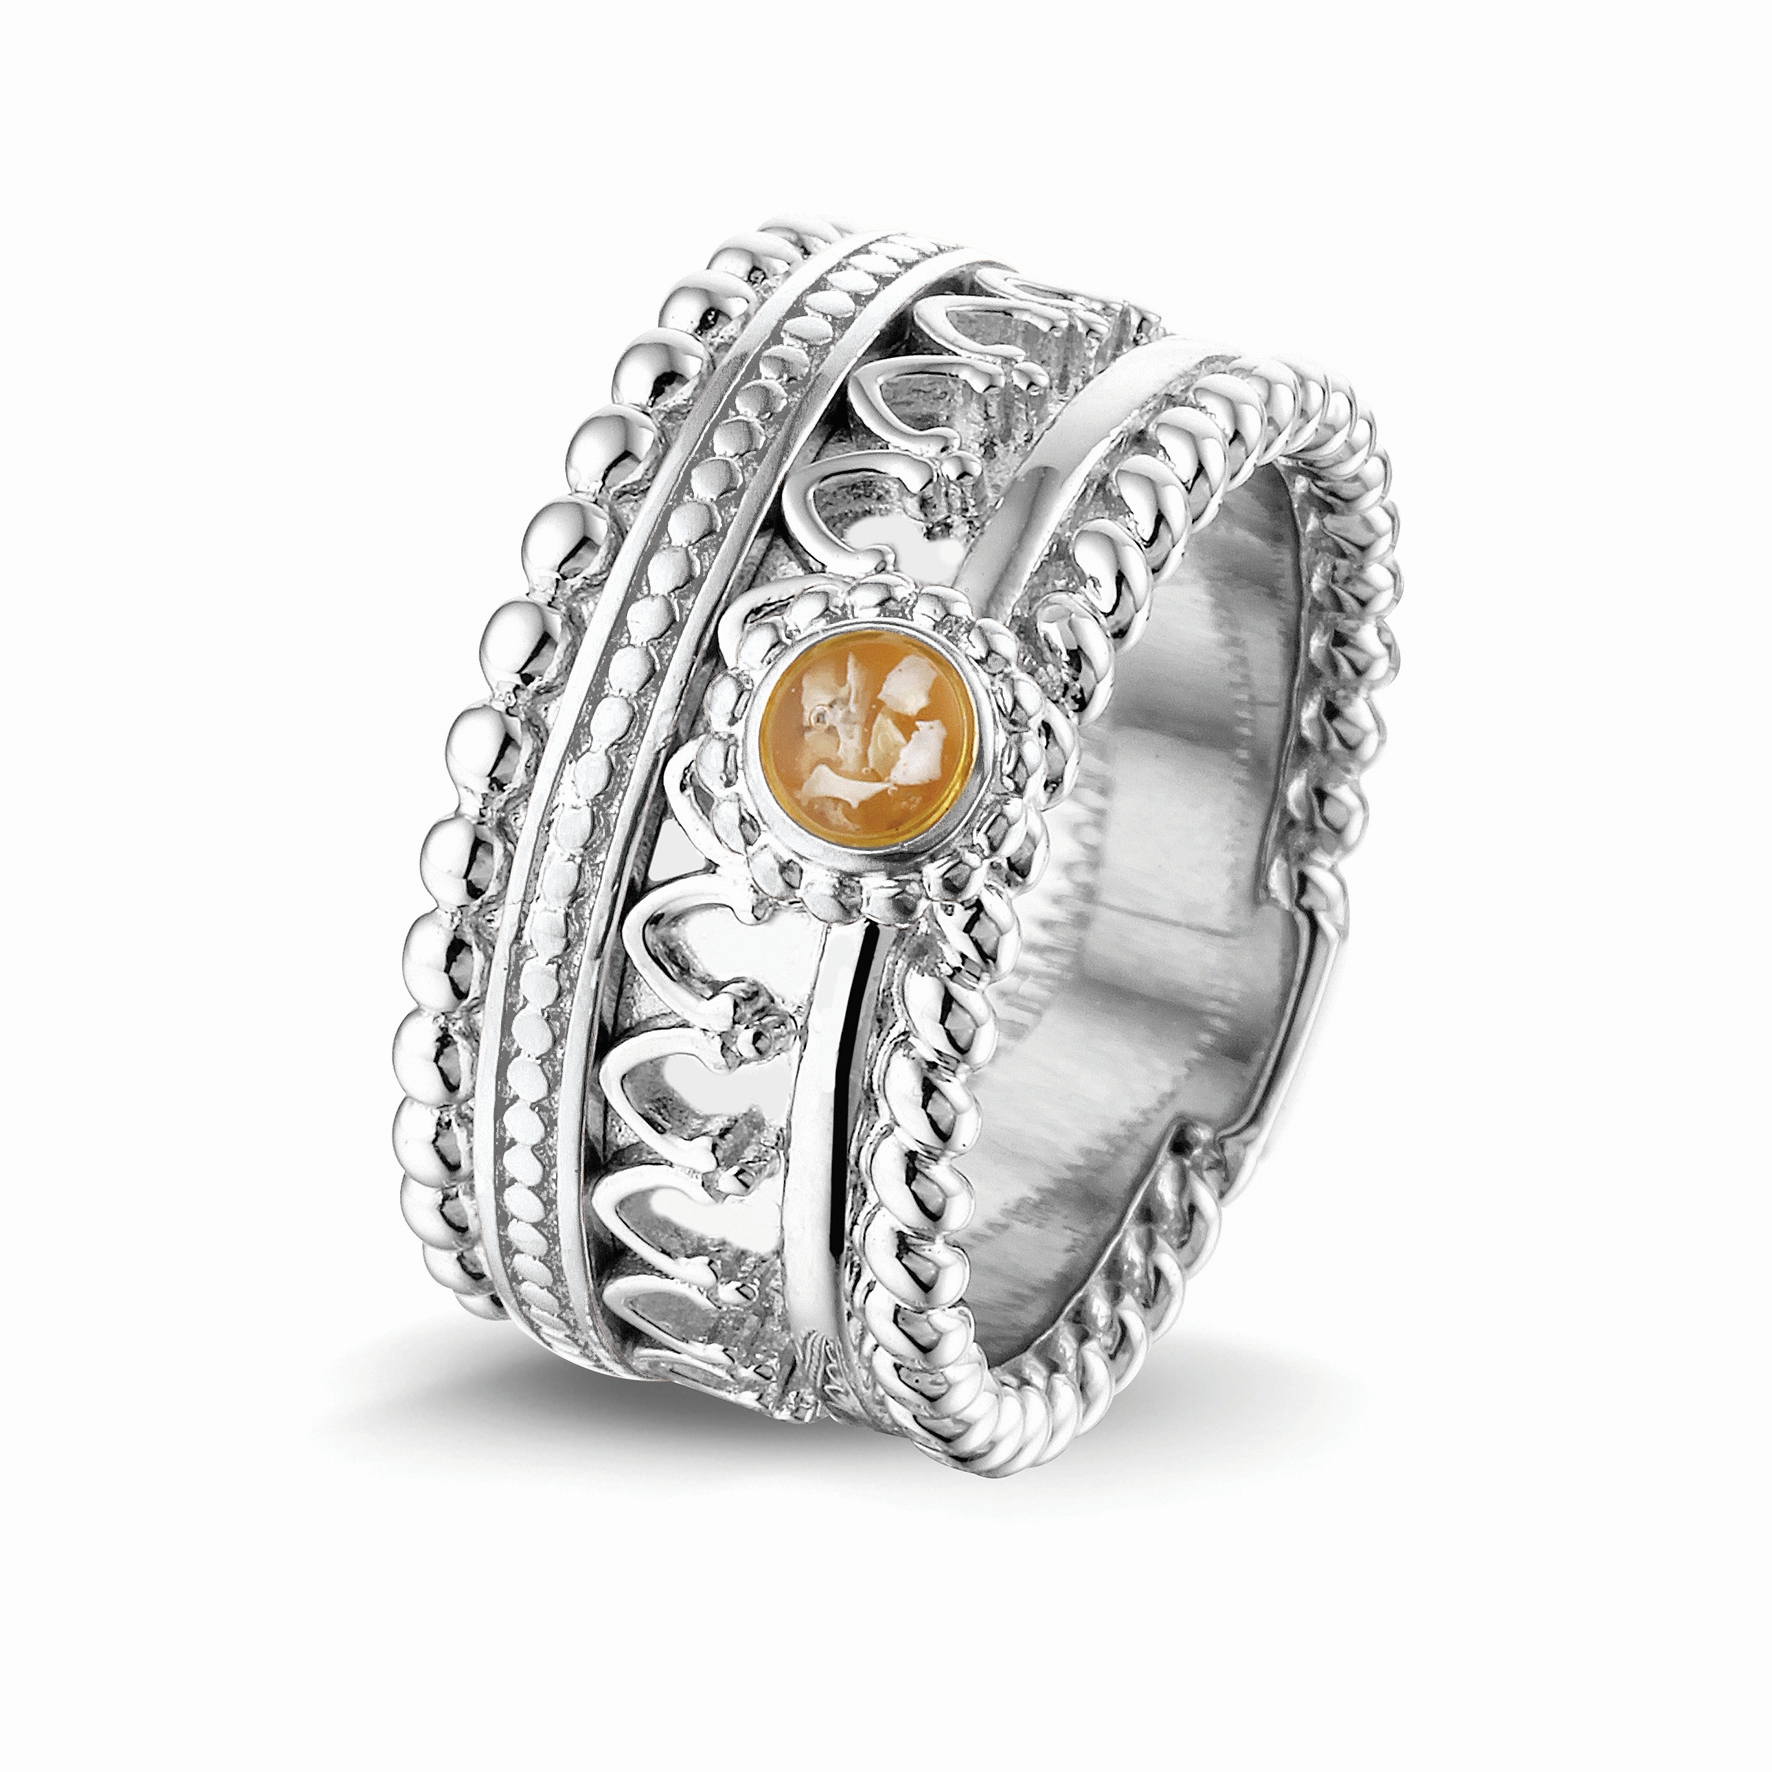 Ring ROR 004 S Zilver see you